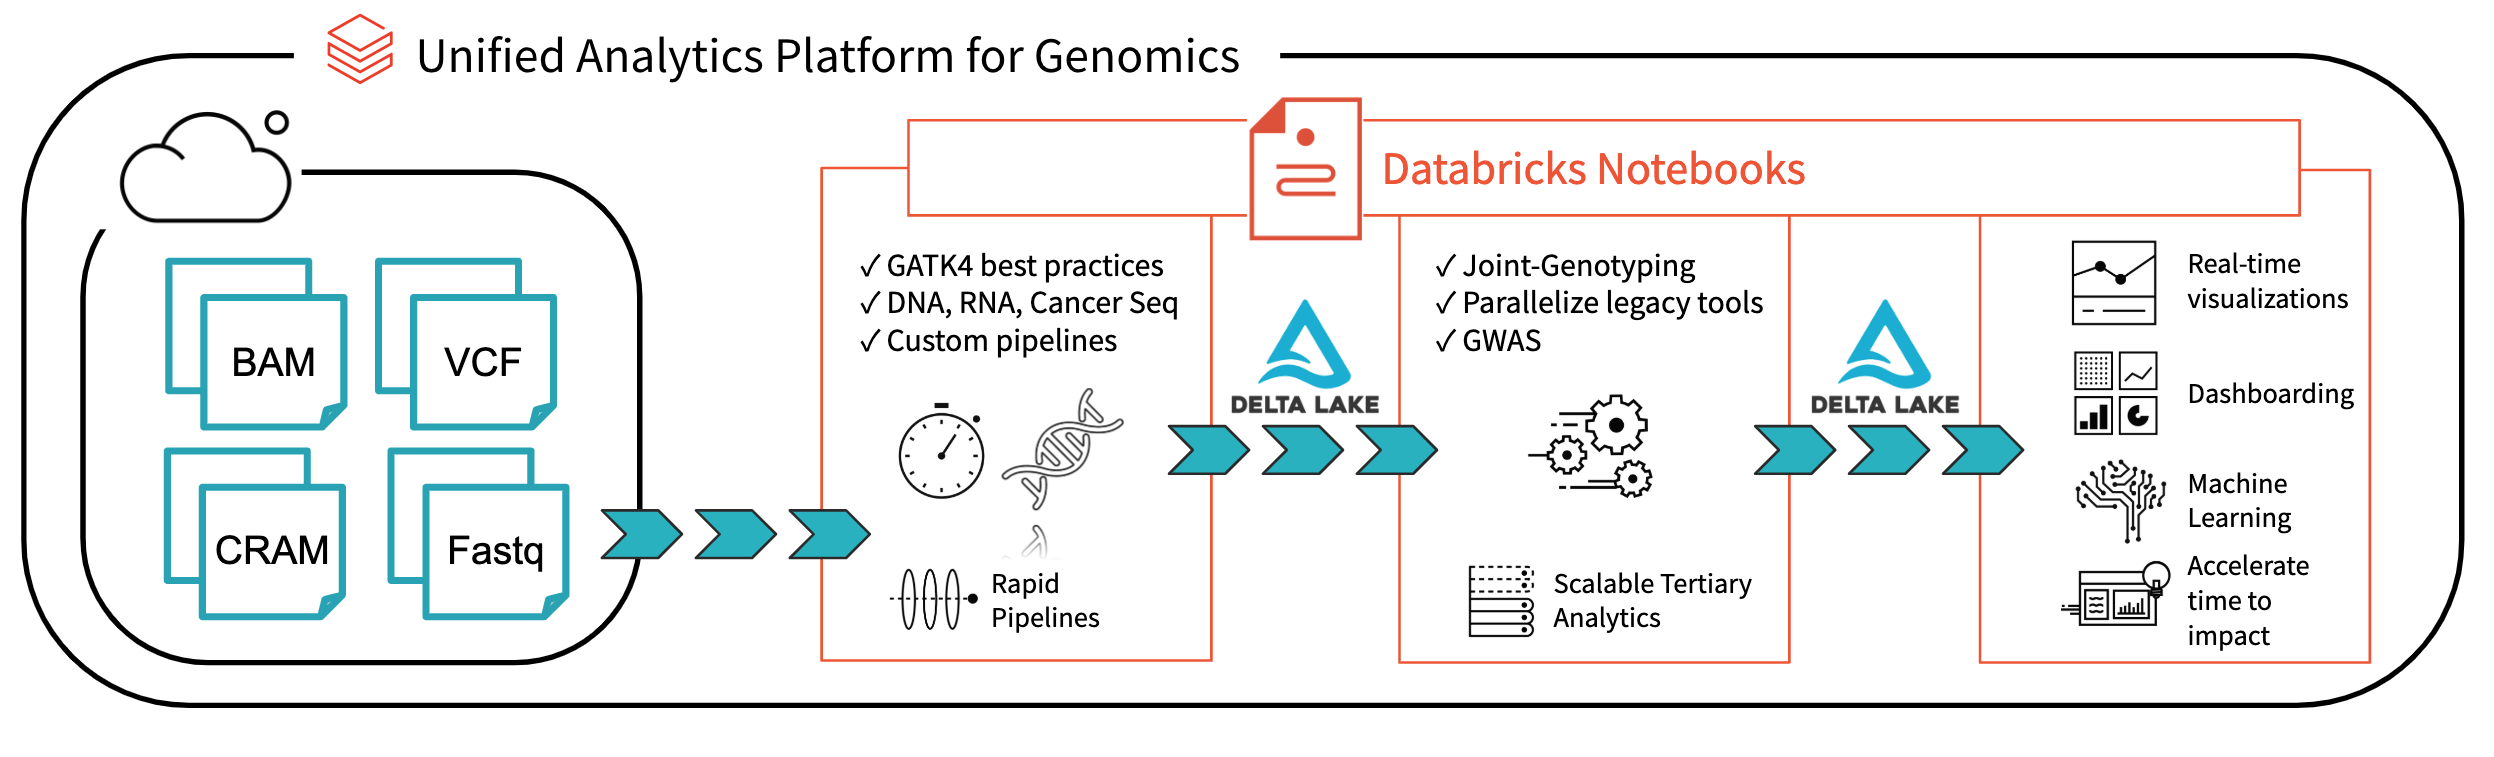 Architecture for End-to-End Genomics Analysis with Databricks